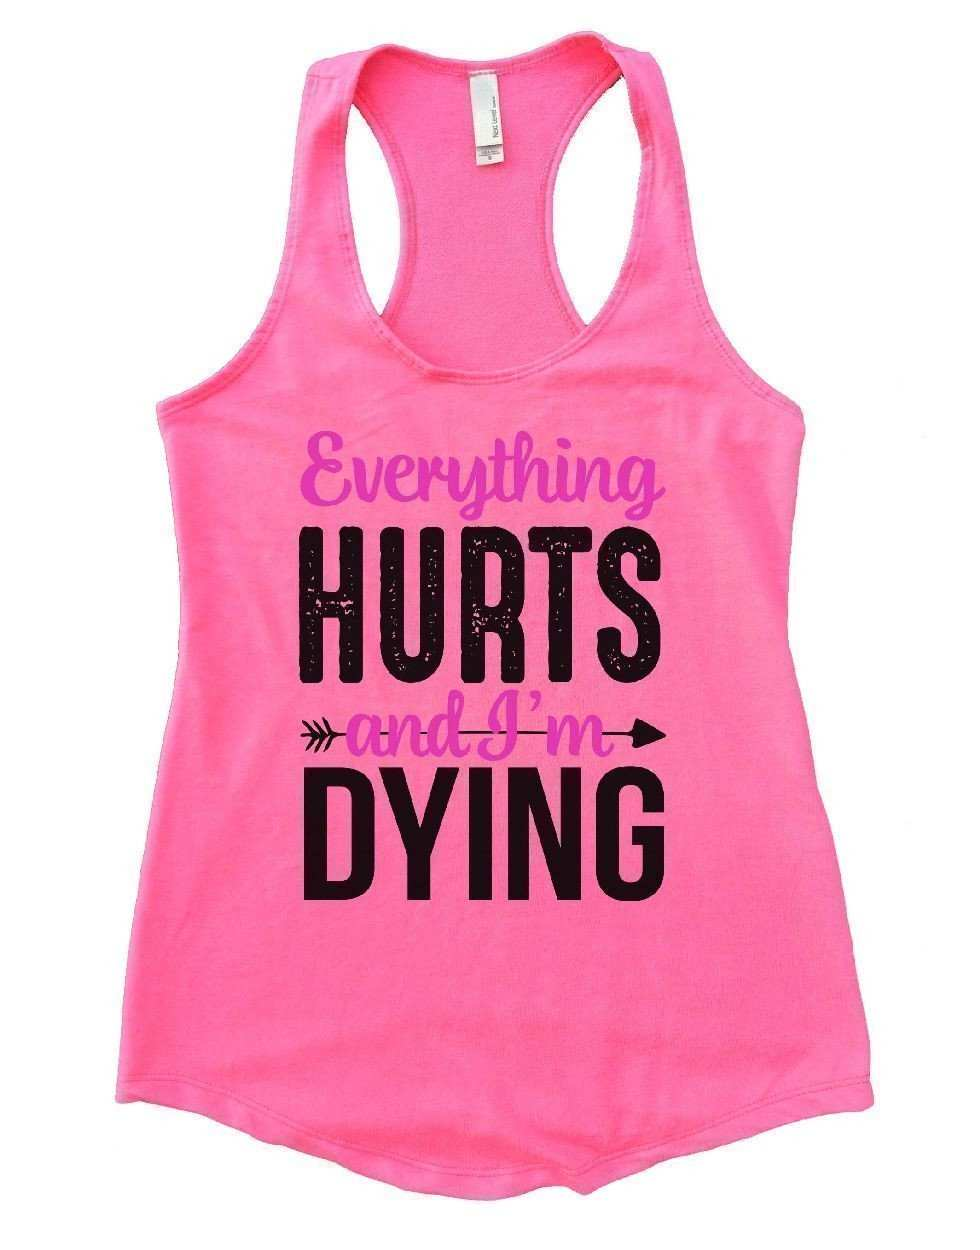 355fc55c4e37b Everything HURTS And I m DYING Womens Workout Tank Top